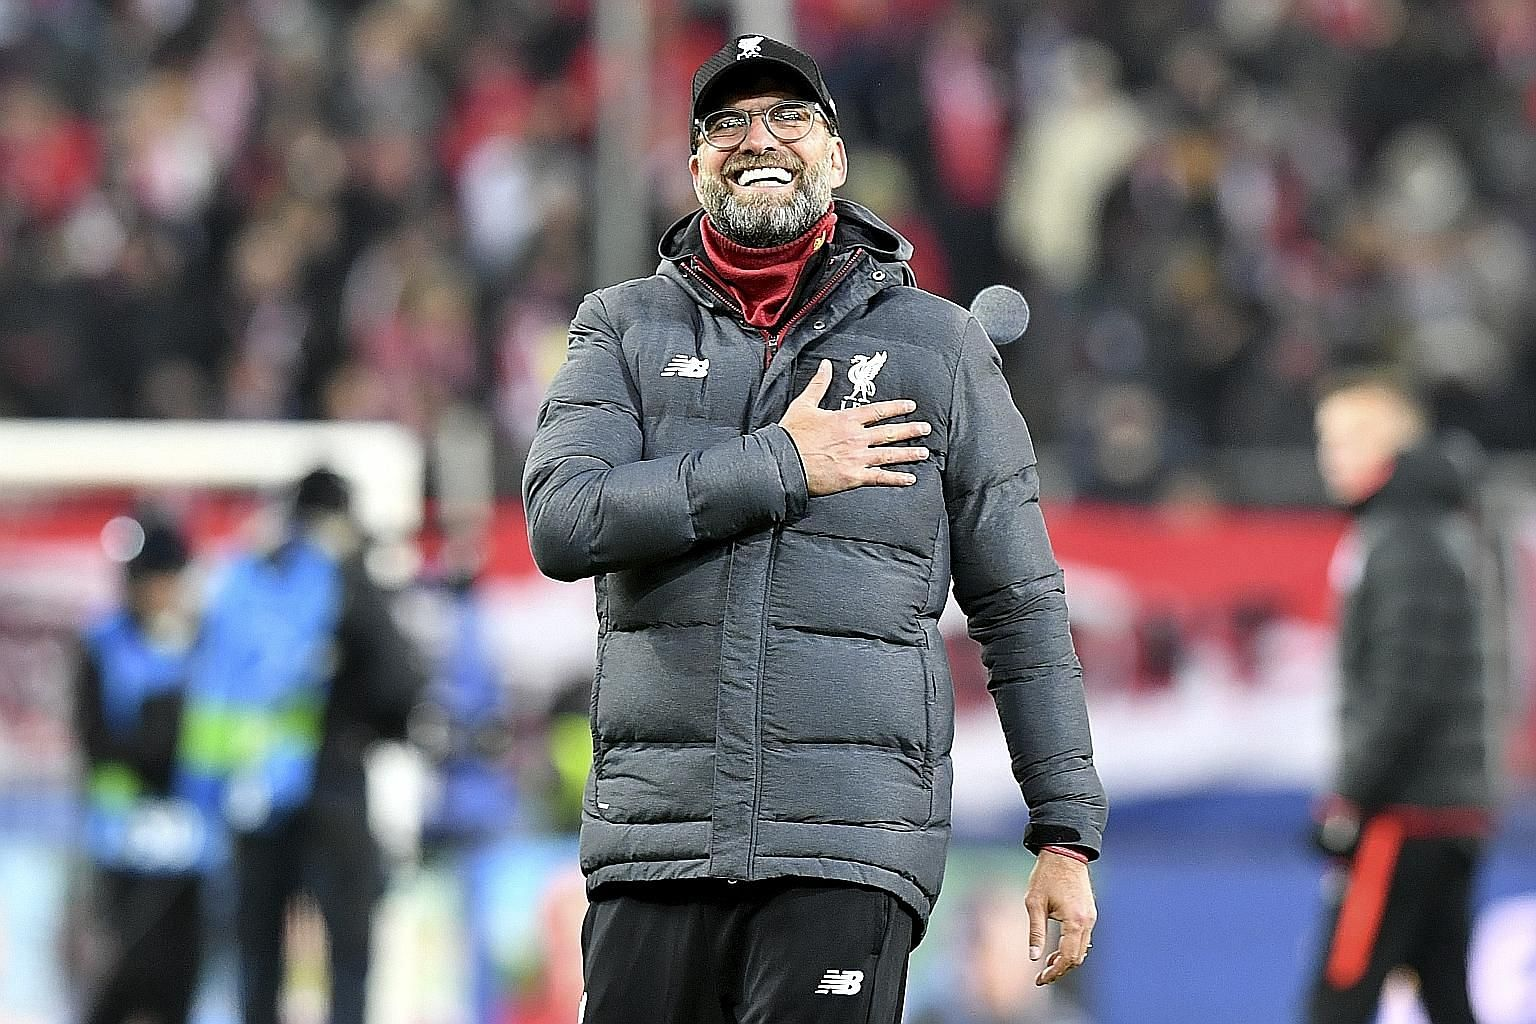 Liverpool manager Jurgen Klopp beaming at the end of their Champions League victory over hosts Salzburg on Tuesday. The Reds won 2-0 to qualify for the round of 16.